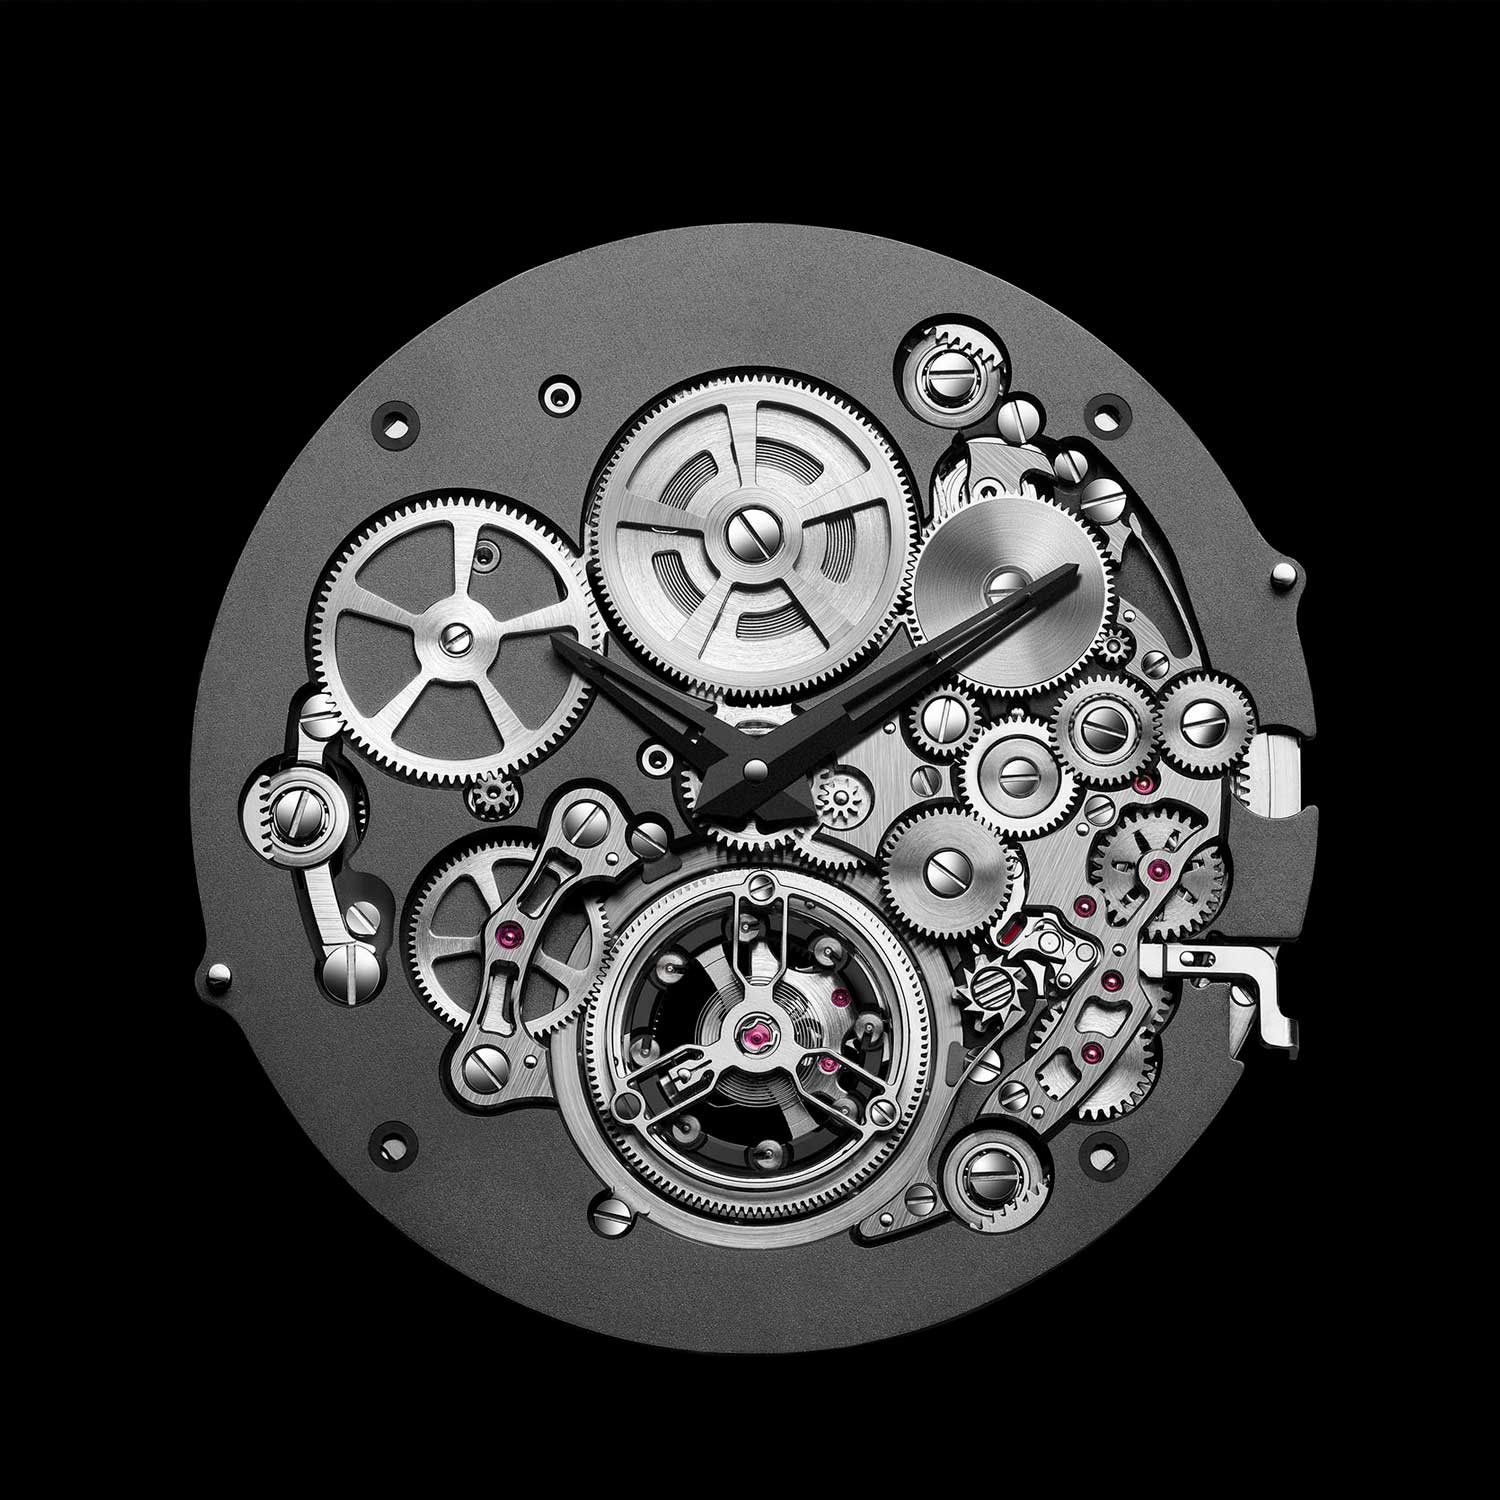 The Bvlgari BVL 228 Automatic Tourbillon movement seen from the front